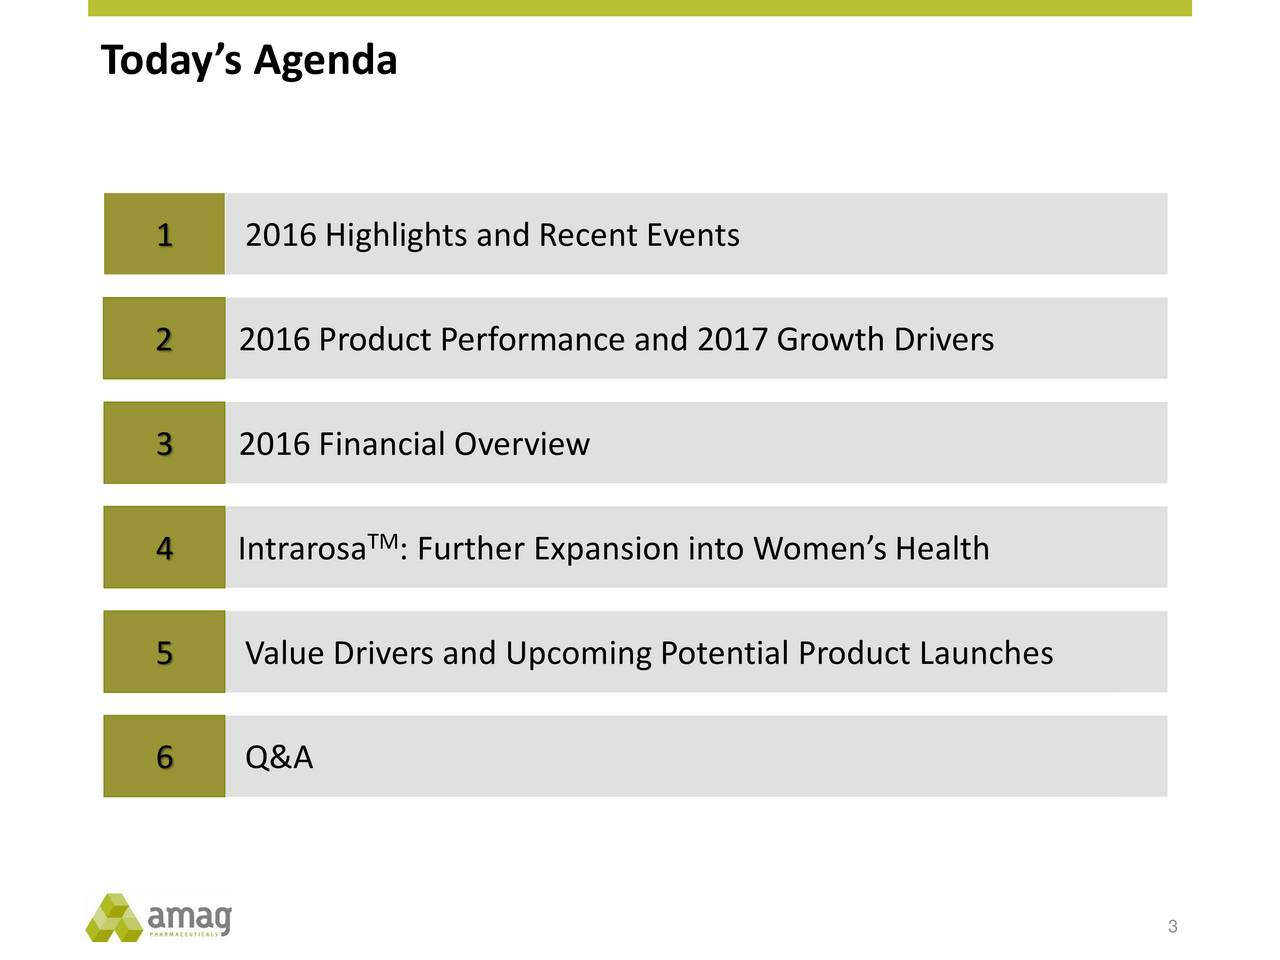 1 2016 Highlights and Recent Events 2 2016 Product Performance and 2017 Growth Drivers 3 2016 Financial Overview 4 Intrarosa : Further Expansion into Womens Health 5 Value Drivers and Upcoming Potential Product Launches 6 Q&A 3